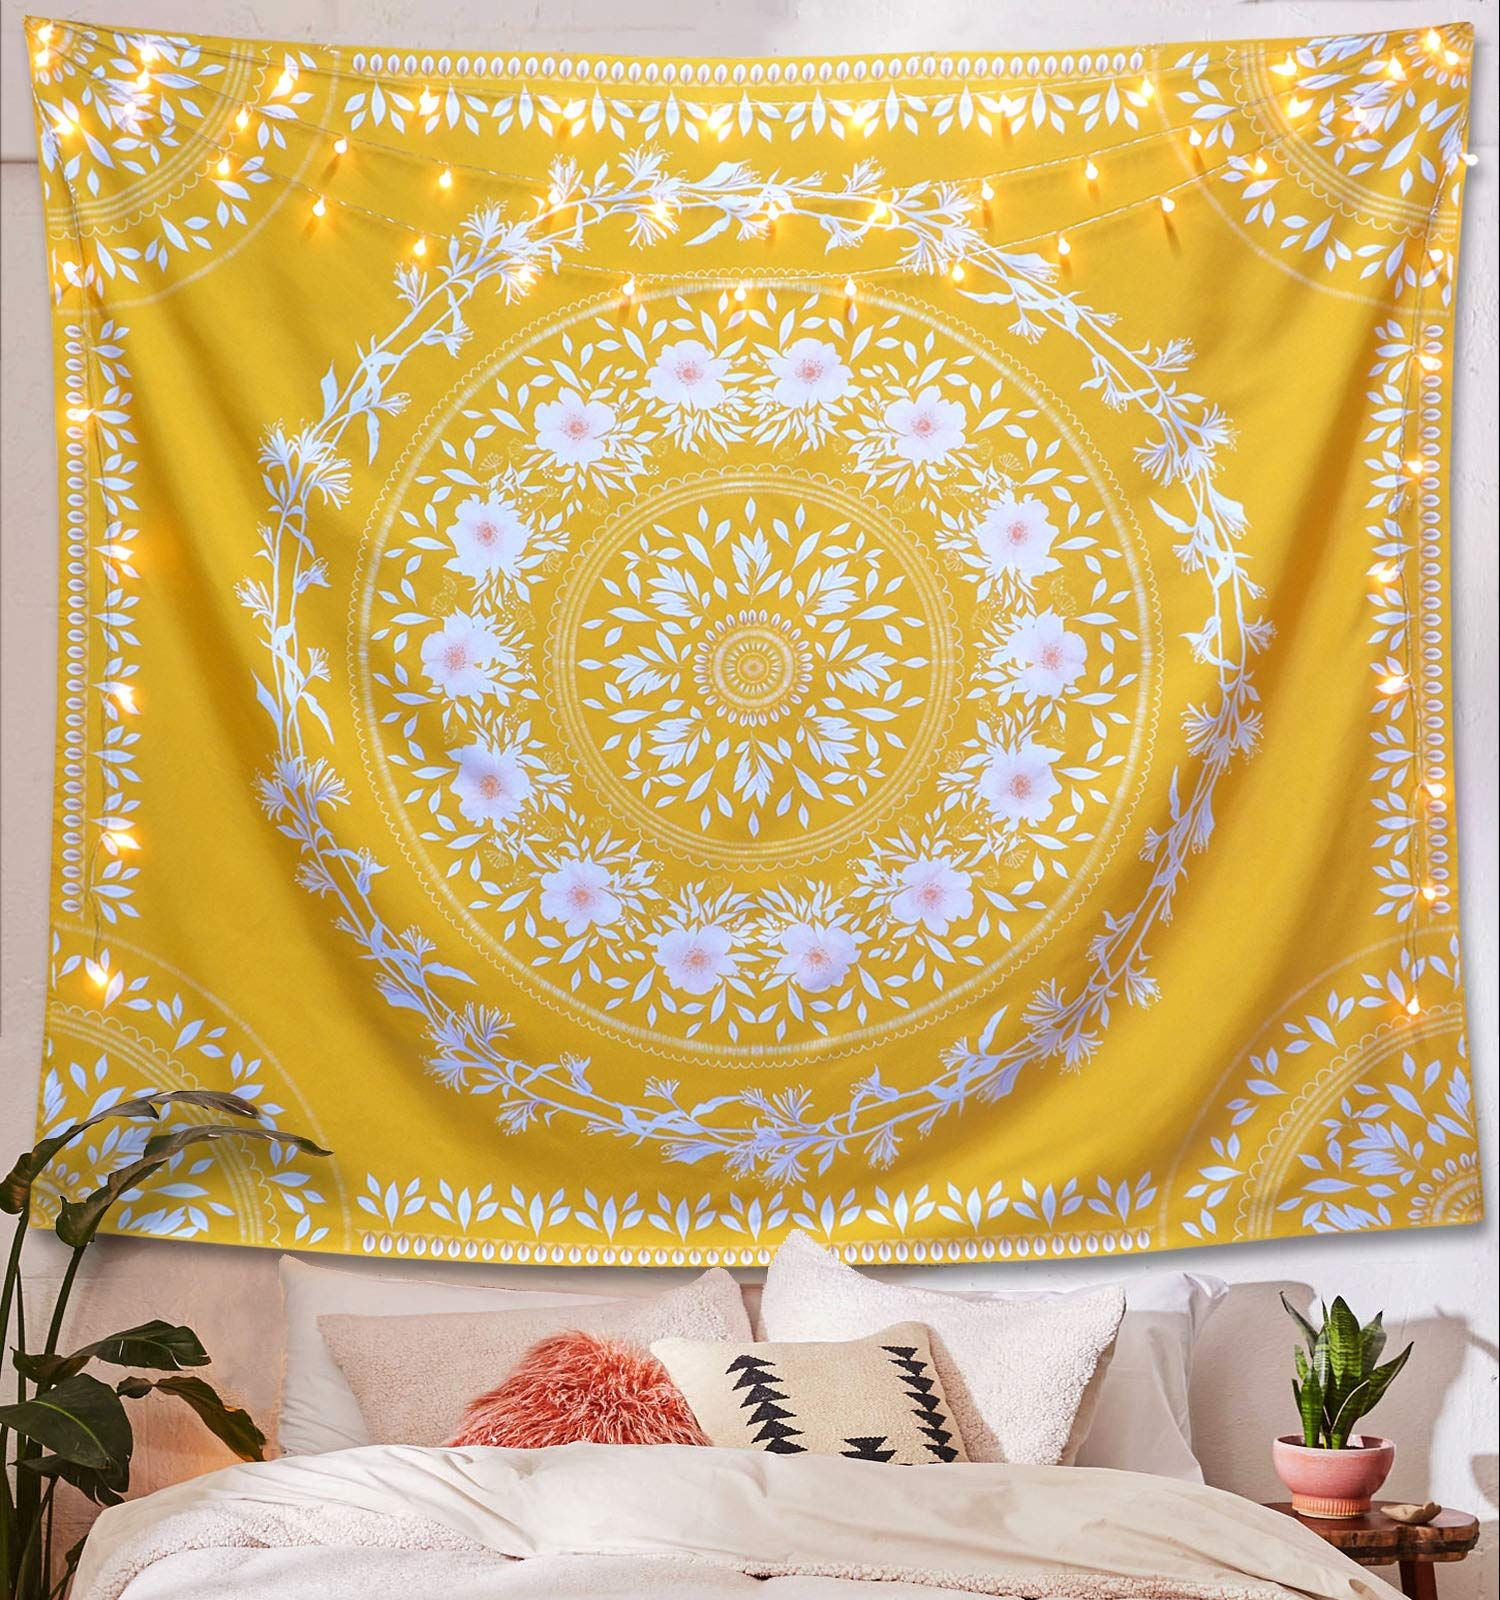 Lifeel Yellow Bohemian Tapestry Wall Hanging Mandala Floral Medallion Hippie Tapestry With White Aesthetic Wreath Desig Bildwirkerei Stoffwände Hipster Zimmer